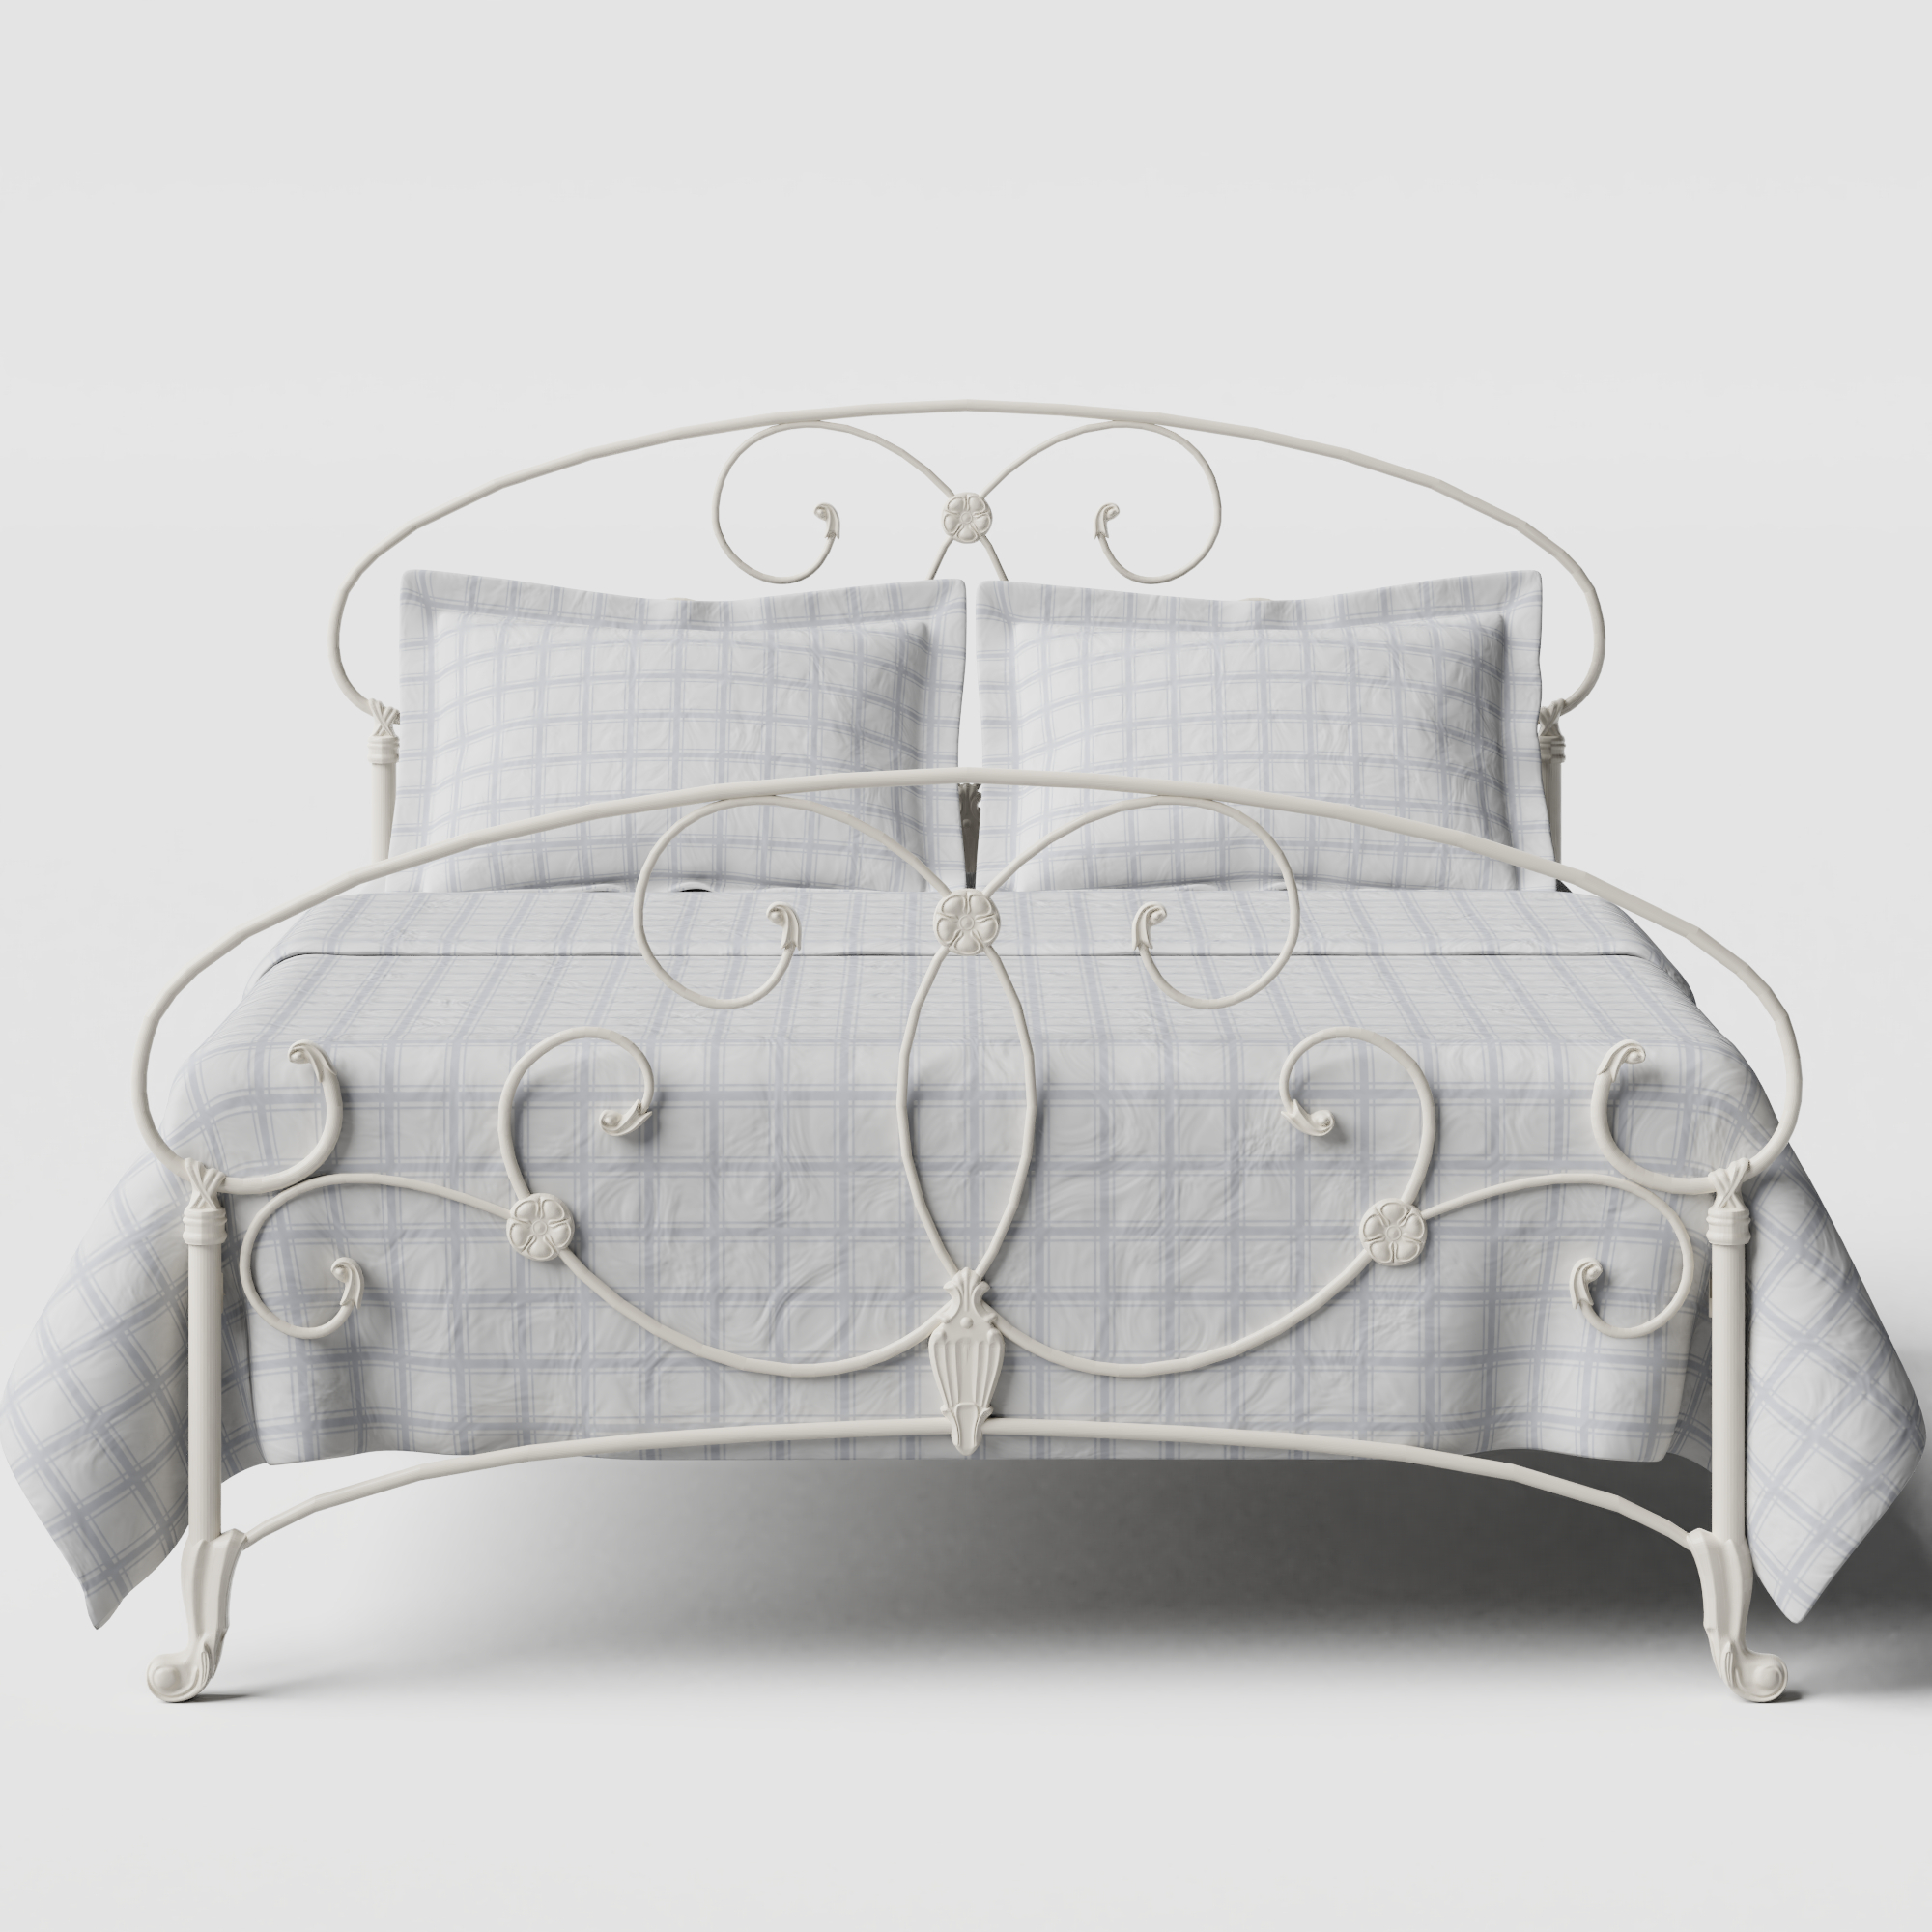 Arigna iron/metal bed in ivory